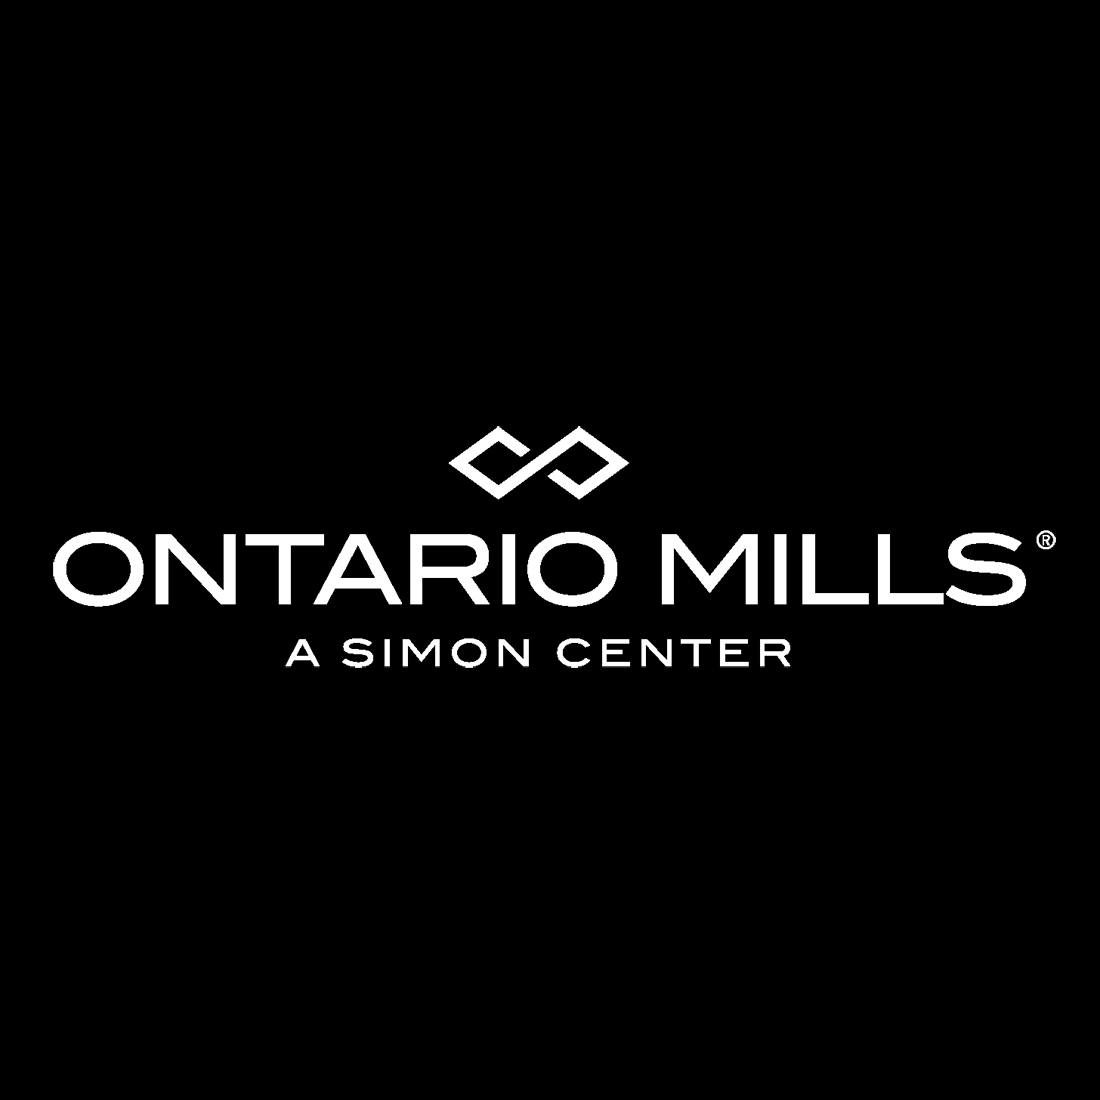 NikeFactoryStore, located at Ontario Mills®: Nike brings inspiration and innovation to every athlete. Experience sports, training, shopping and everything else that's new at Nike in Men's, Women's and Kids apparel and footwear. Come visit the Nike Factory Store today.